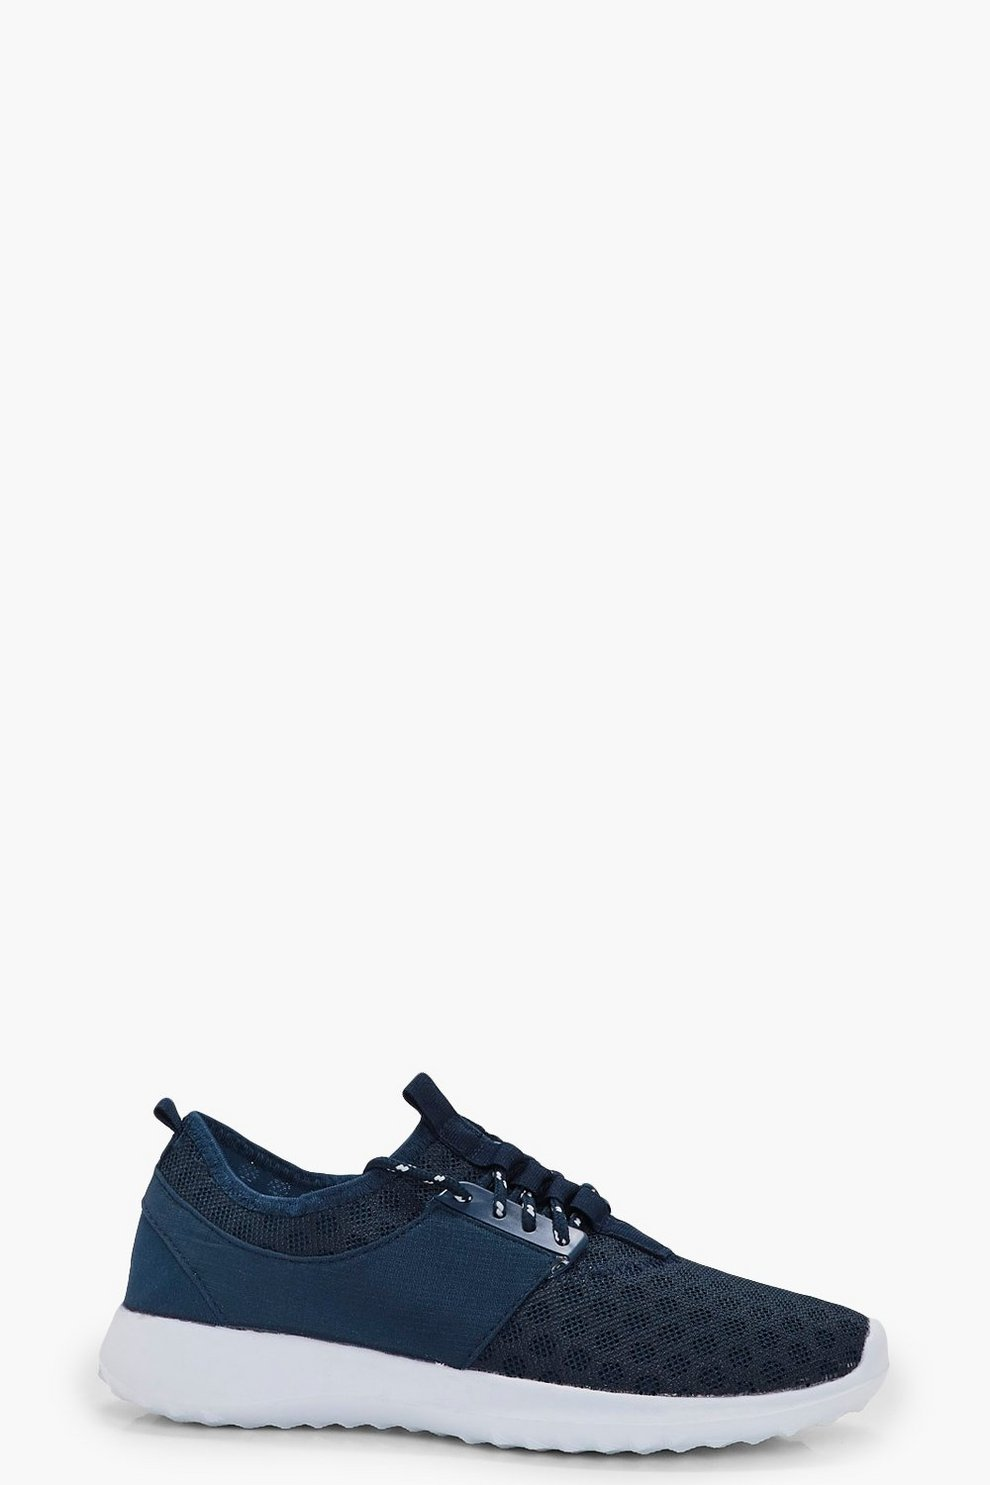 935665be62 Womens Navy Holly Spot Mesh Sports Trainer. Hover to zoom